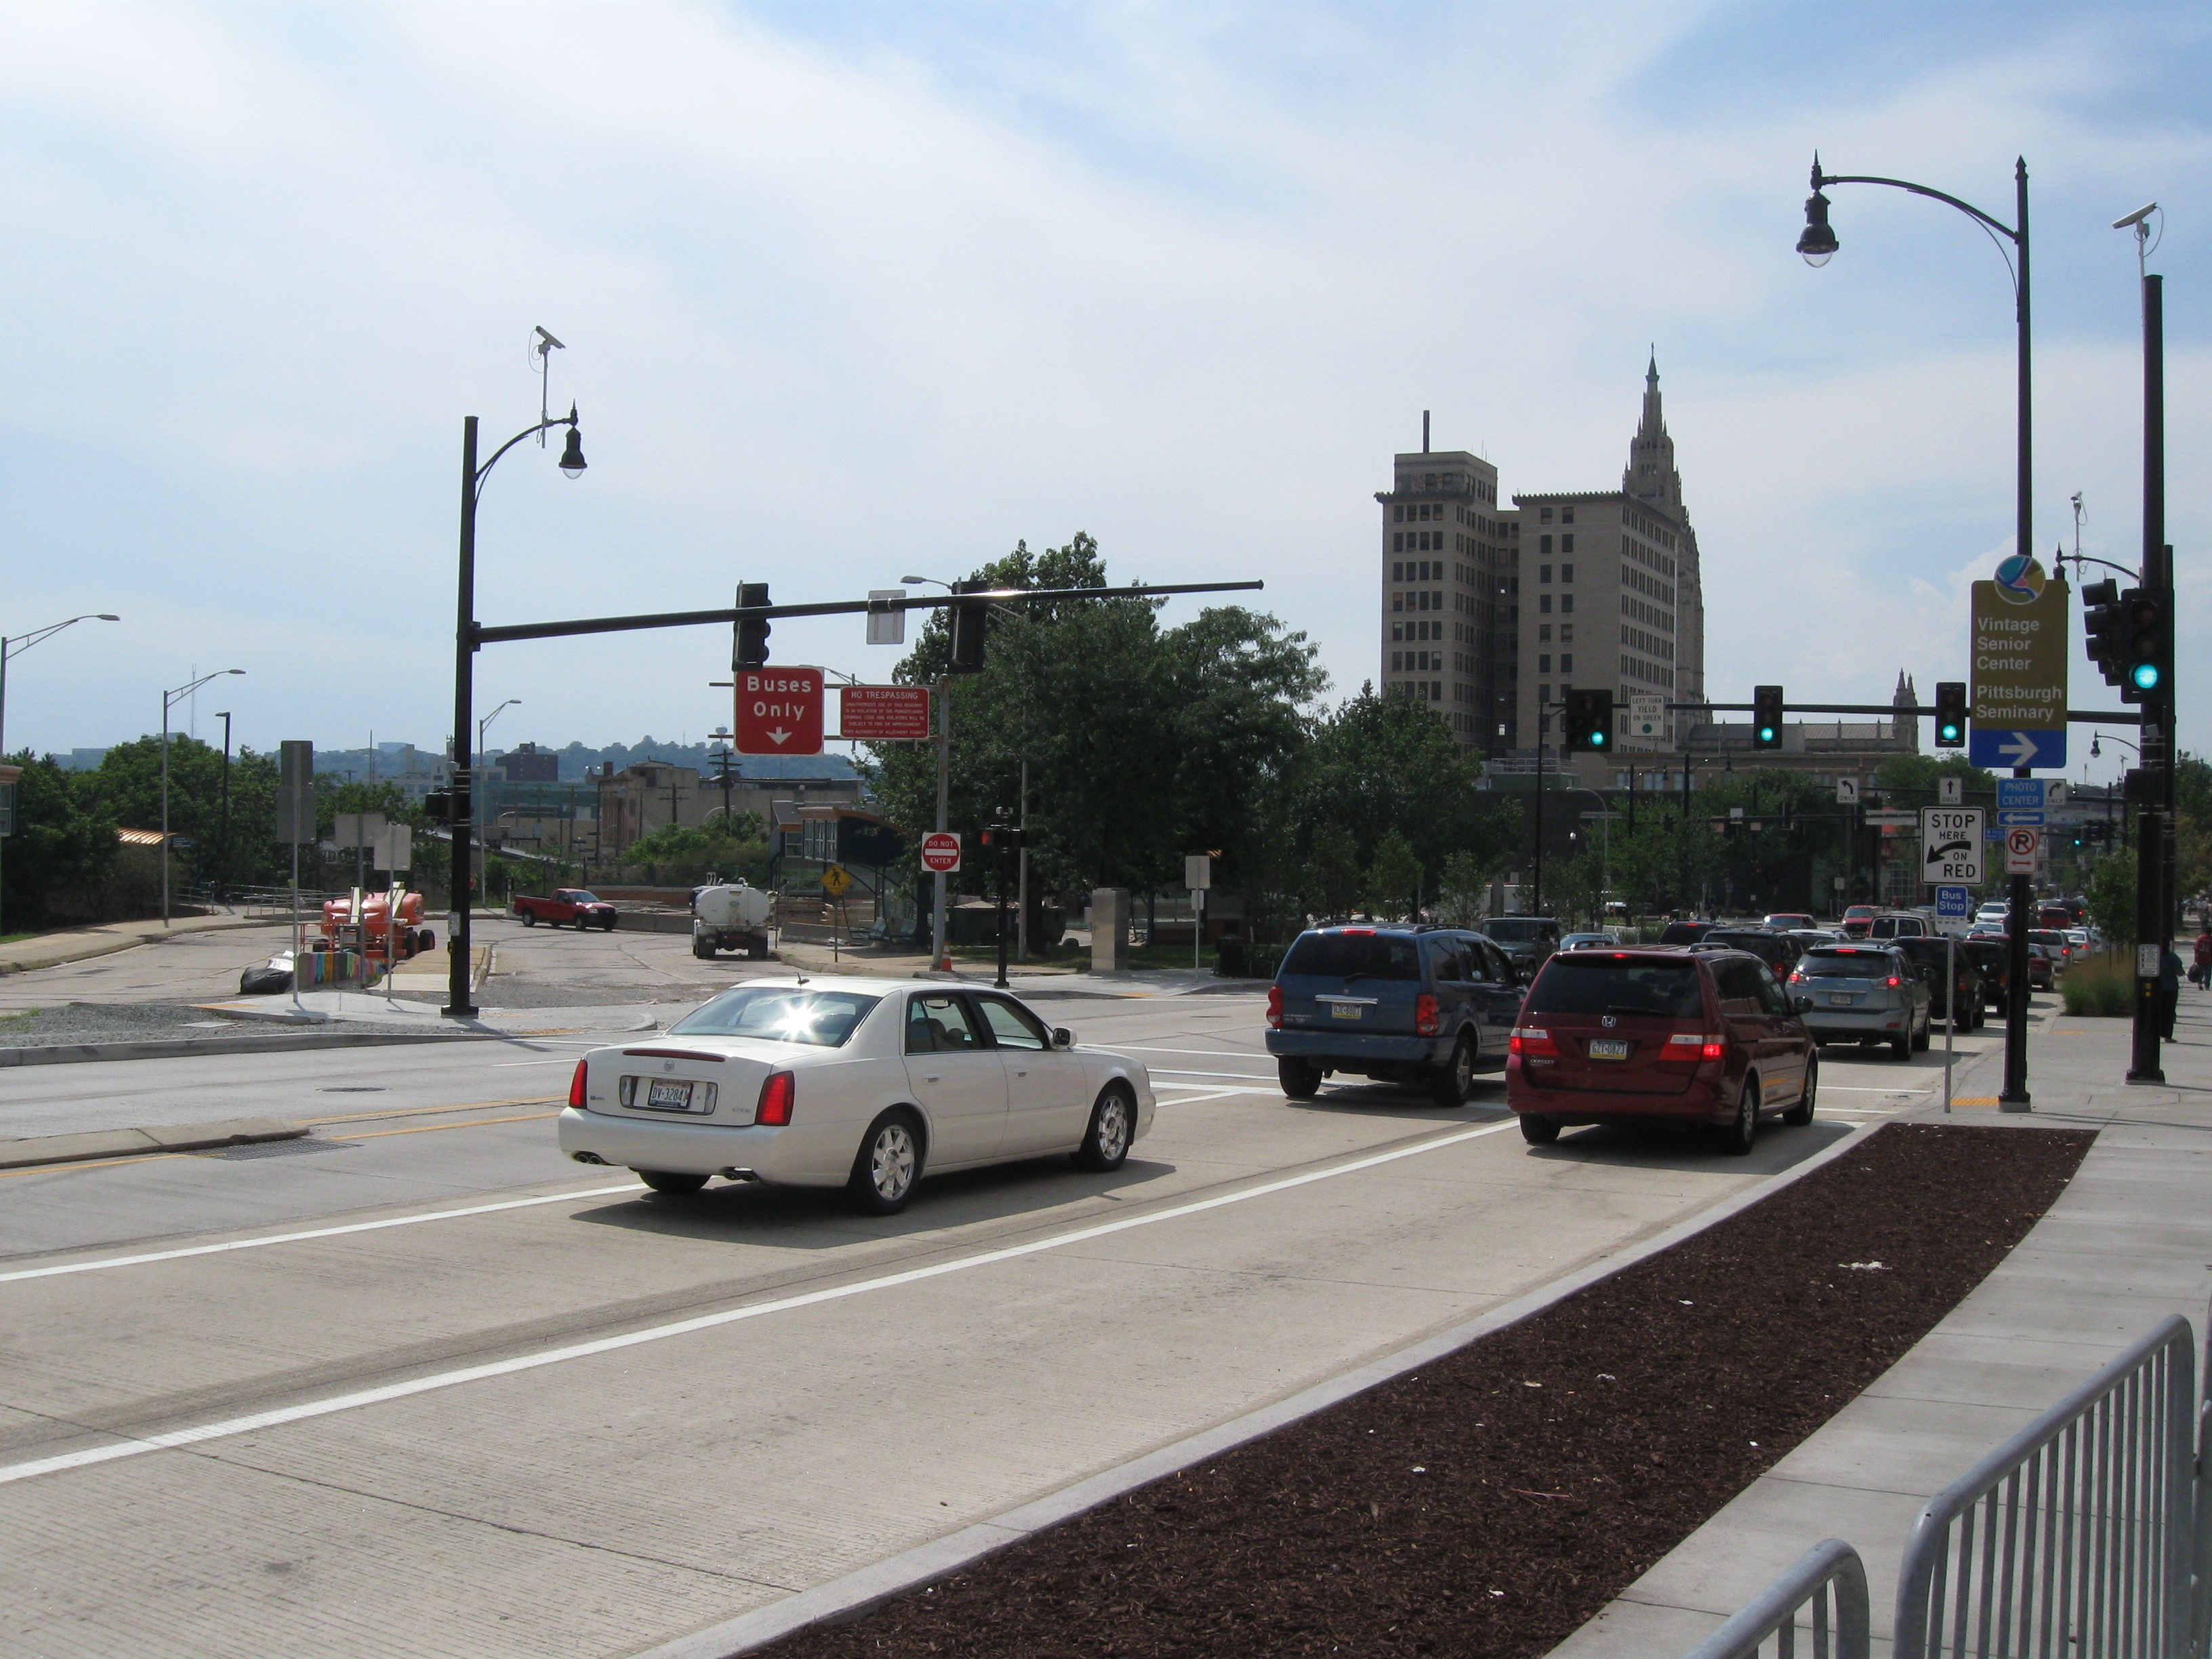 One of nine original Surtrac-based signals in Pittsburgh, showing cameras and sensors.